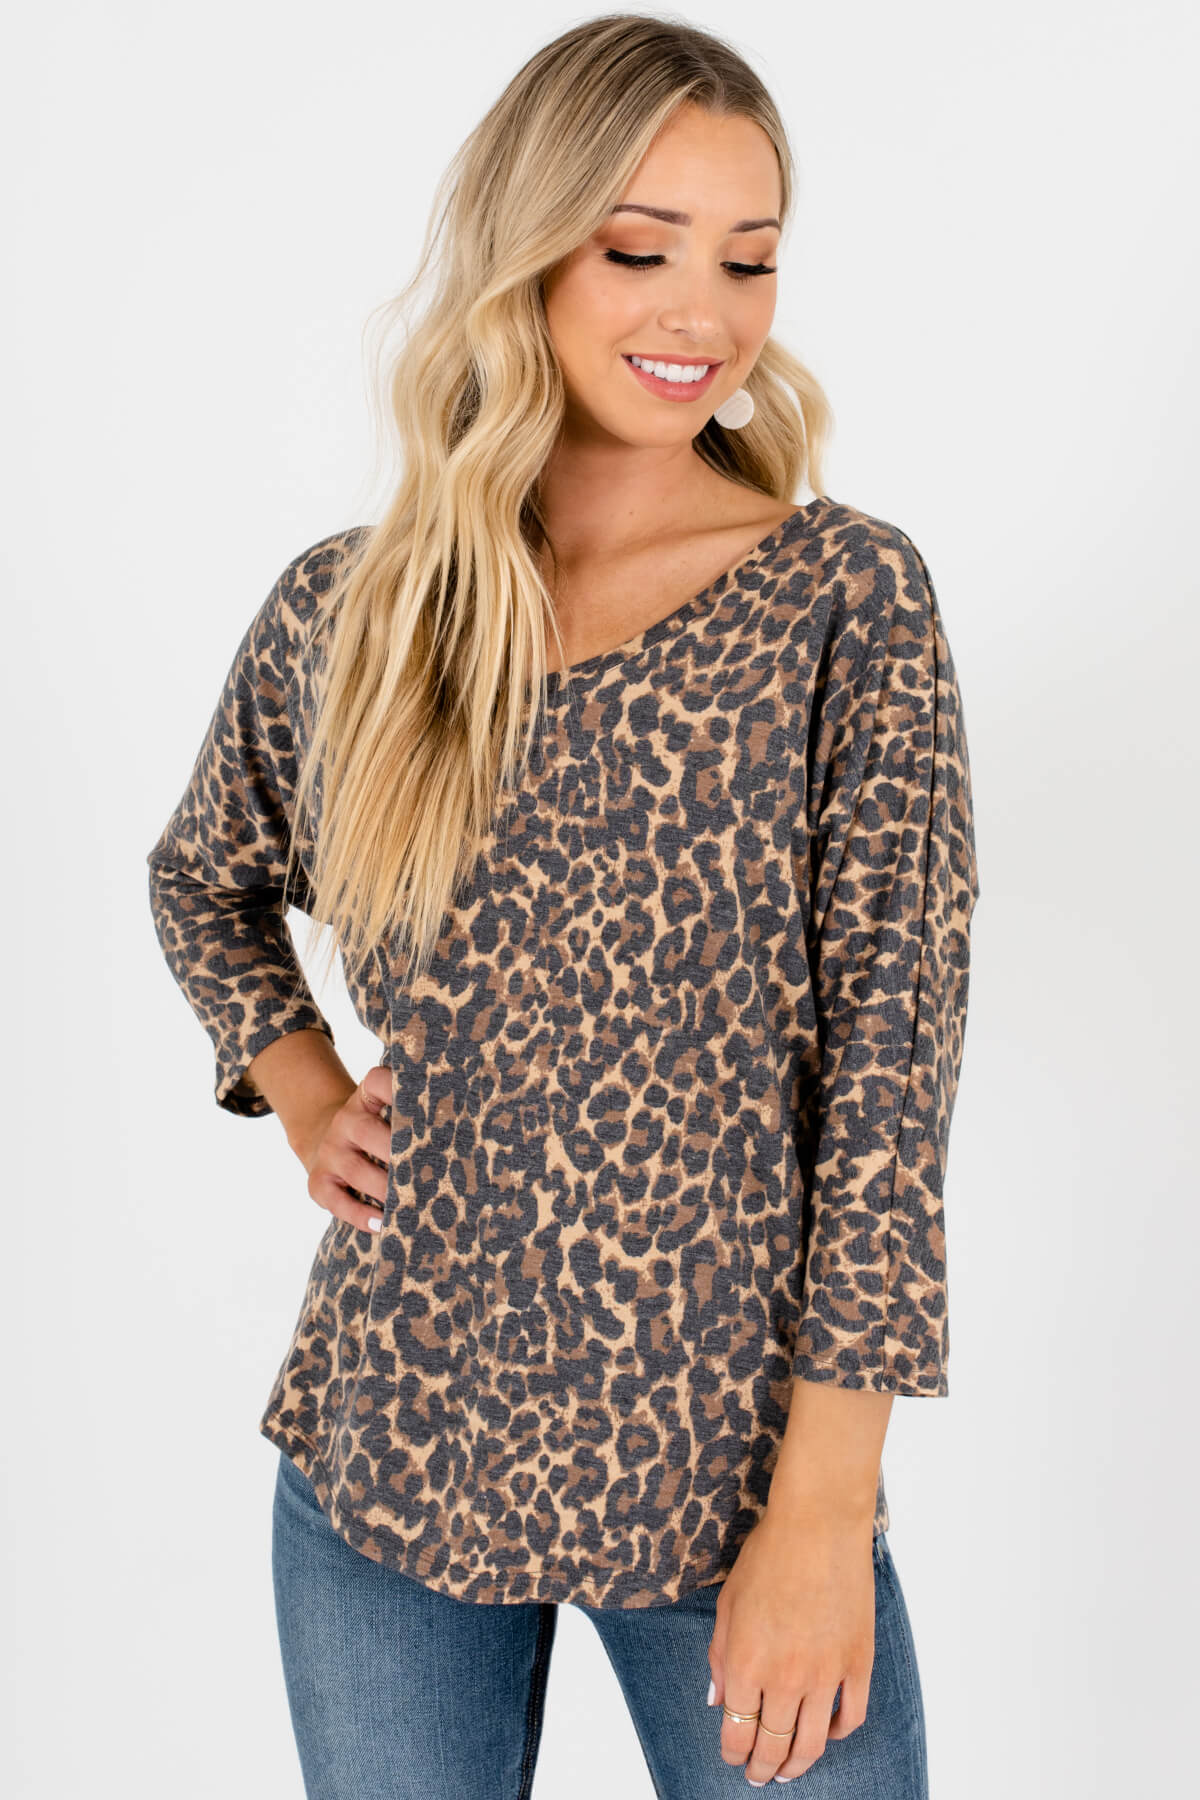 Beige Brown Black Faded Leopard Print Affordable Online Boutique Tops